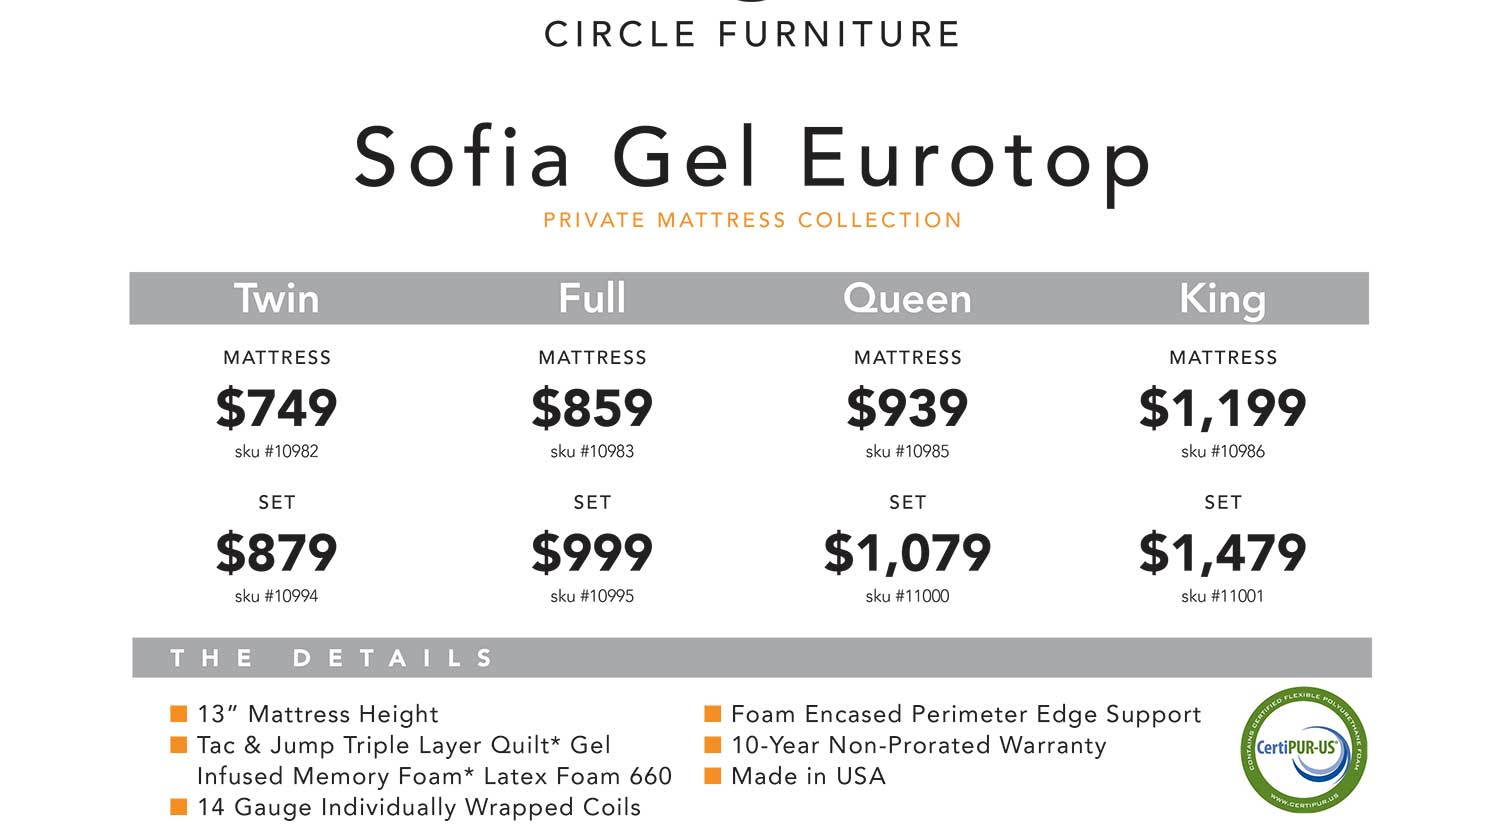 Sofia Gel EuroTop Mattress